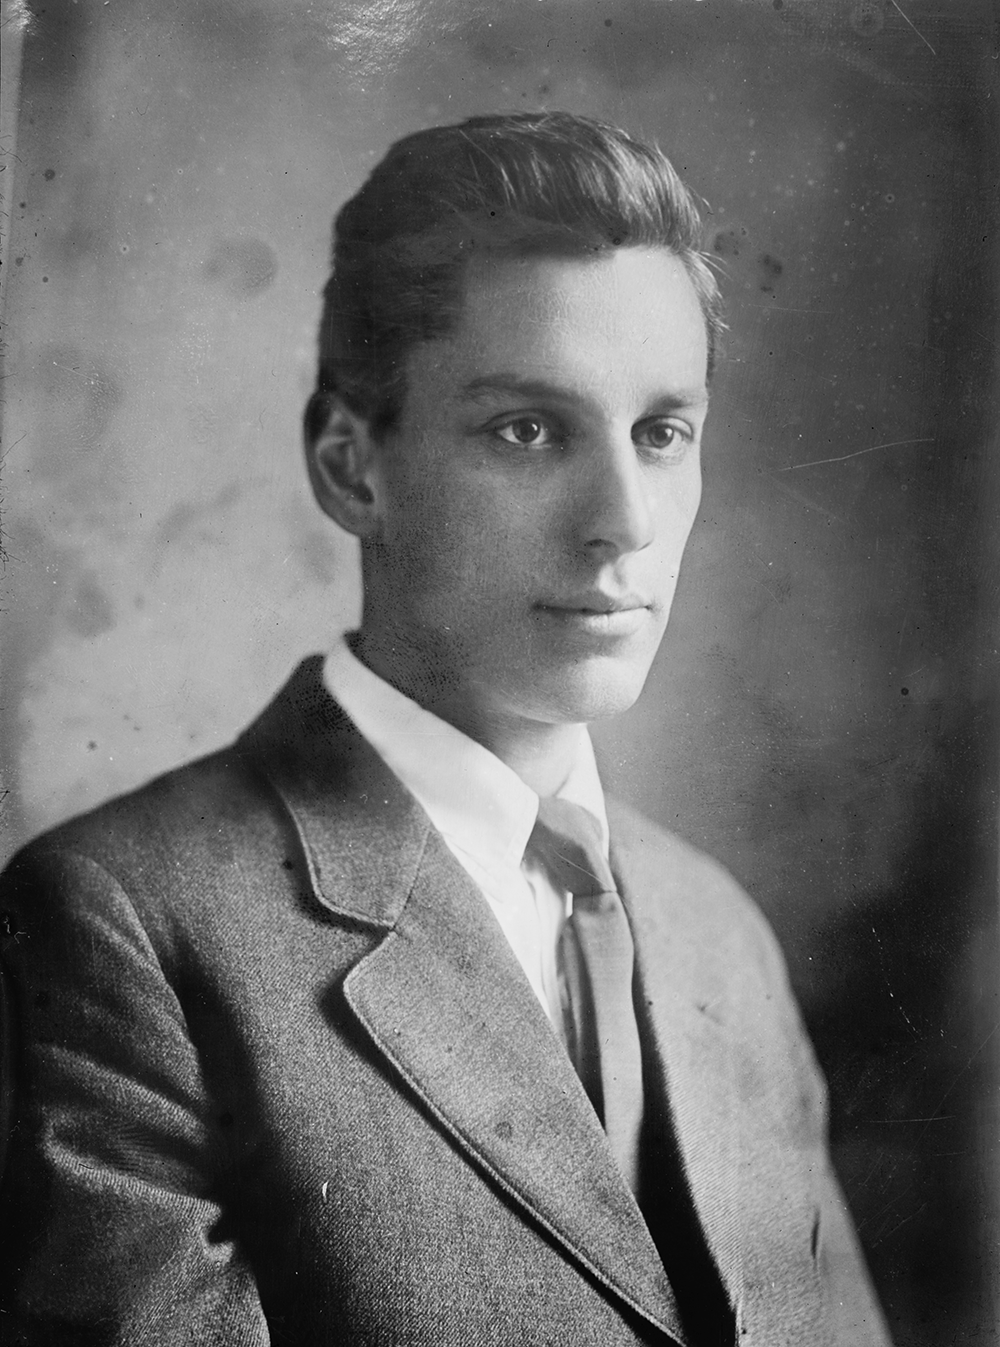 The young Max Eastman. George Grantham Bain Collection, Prints and Photographs Division, Library of Congress, Washington, DC.